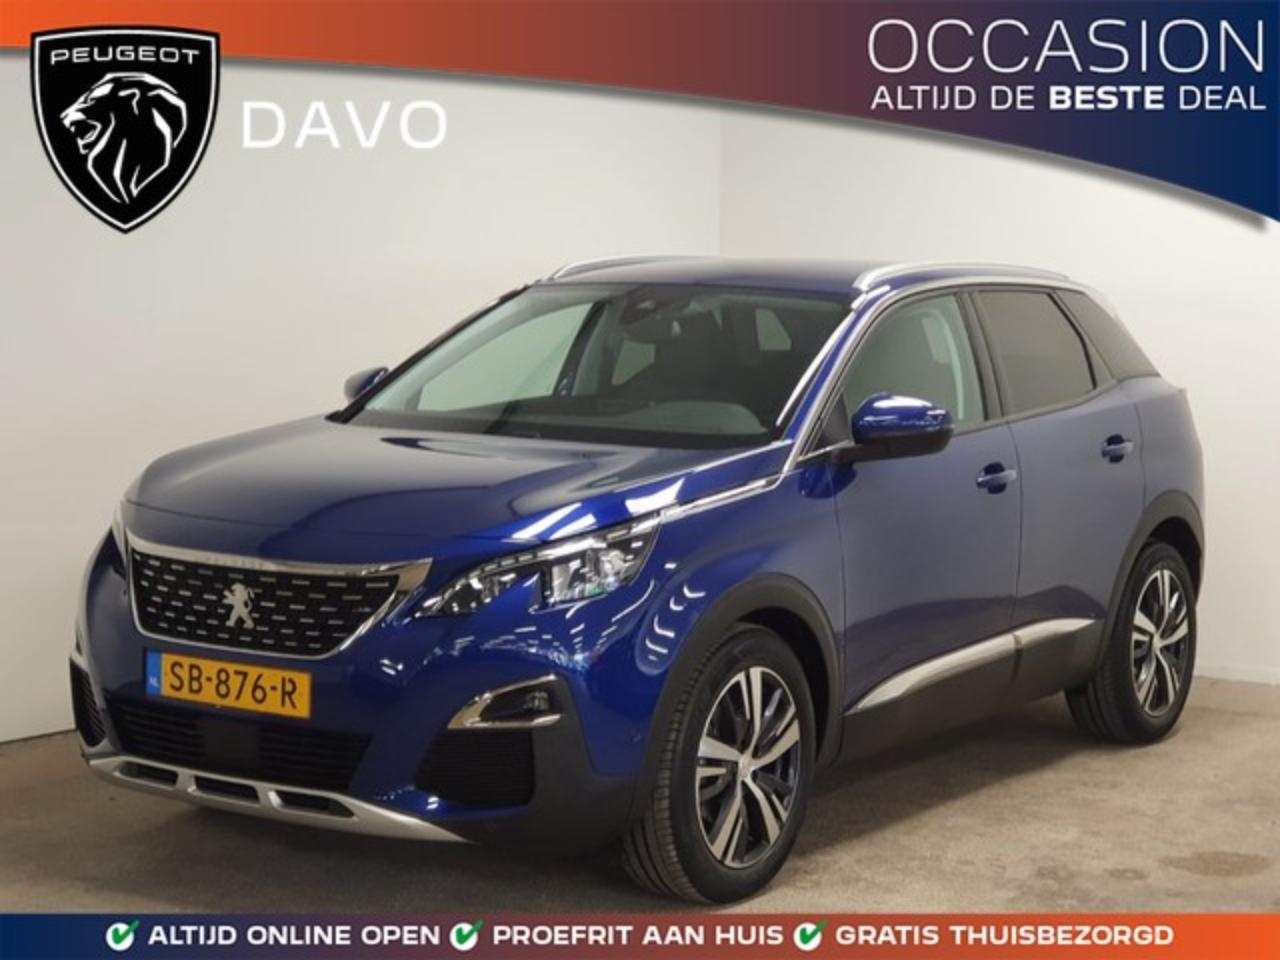 Peugeot 3008 1.2 PureTech Allure / Automaat ** Full led-koplamp